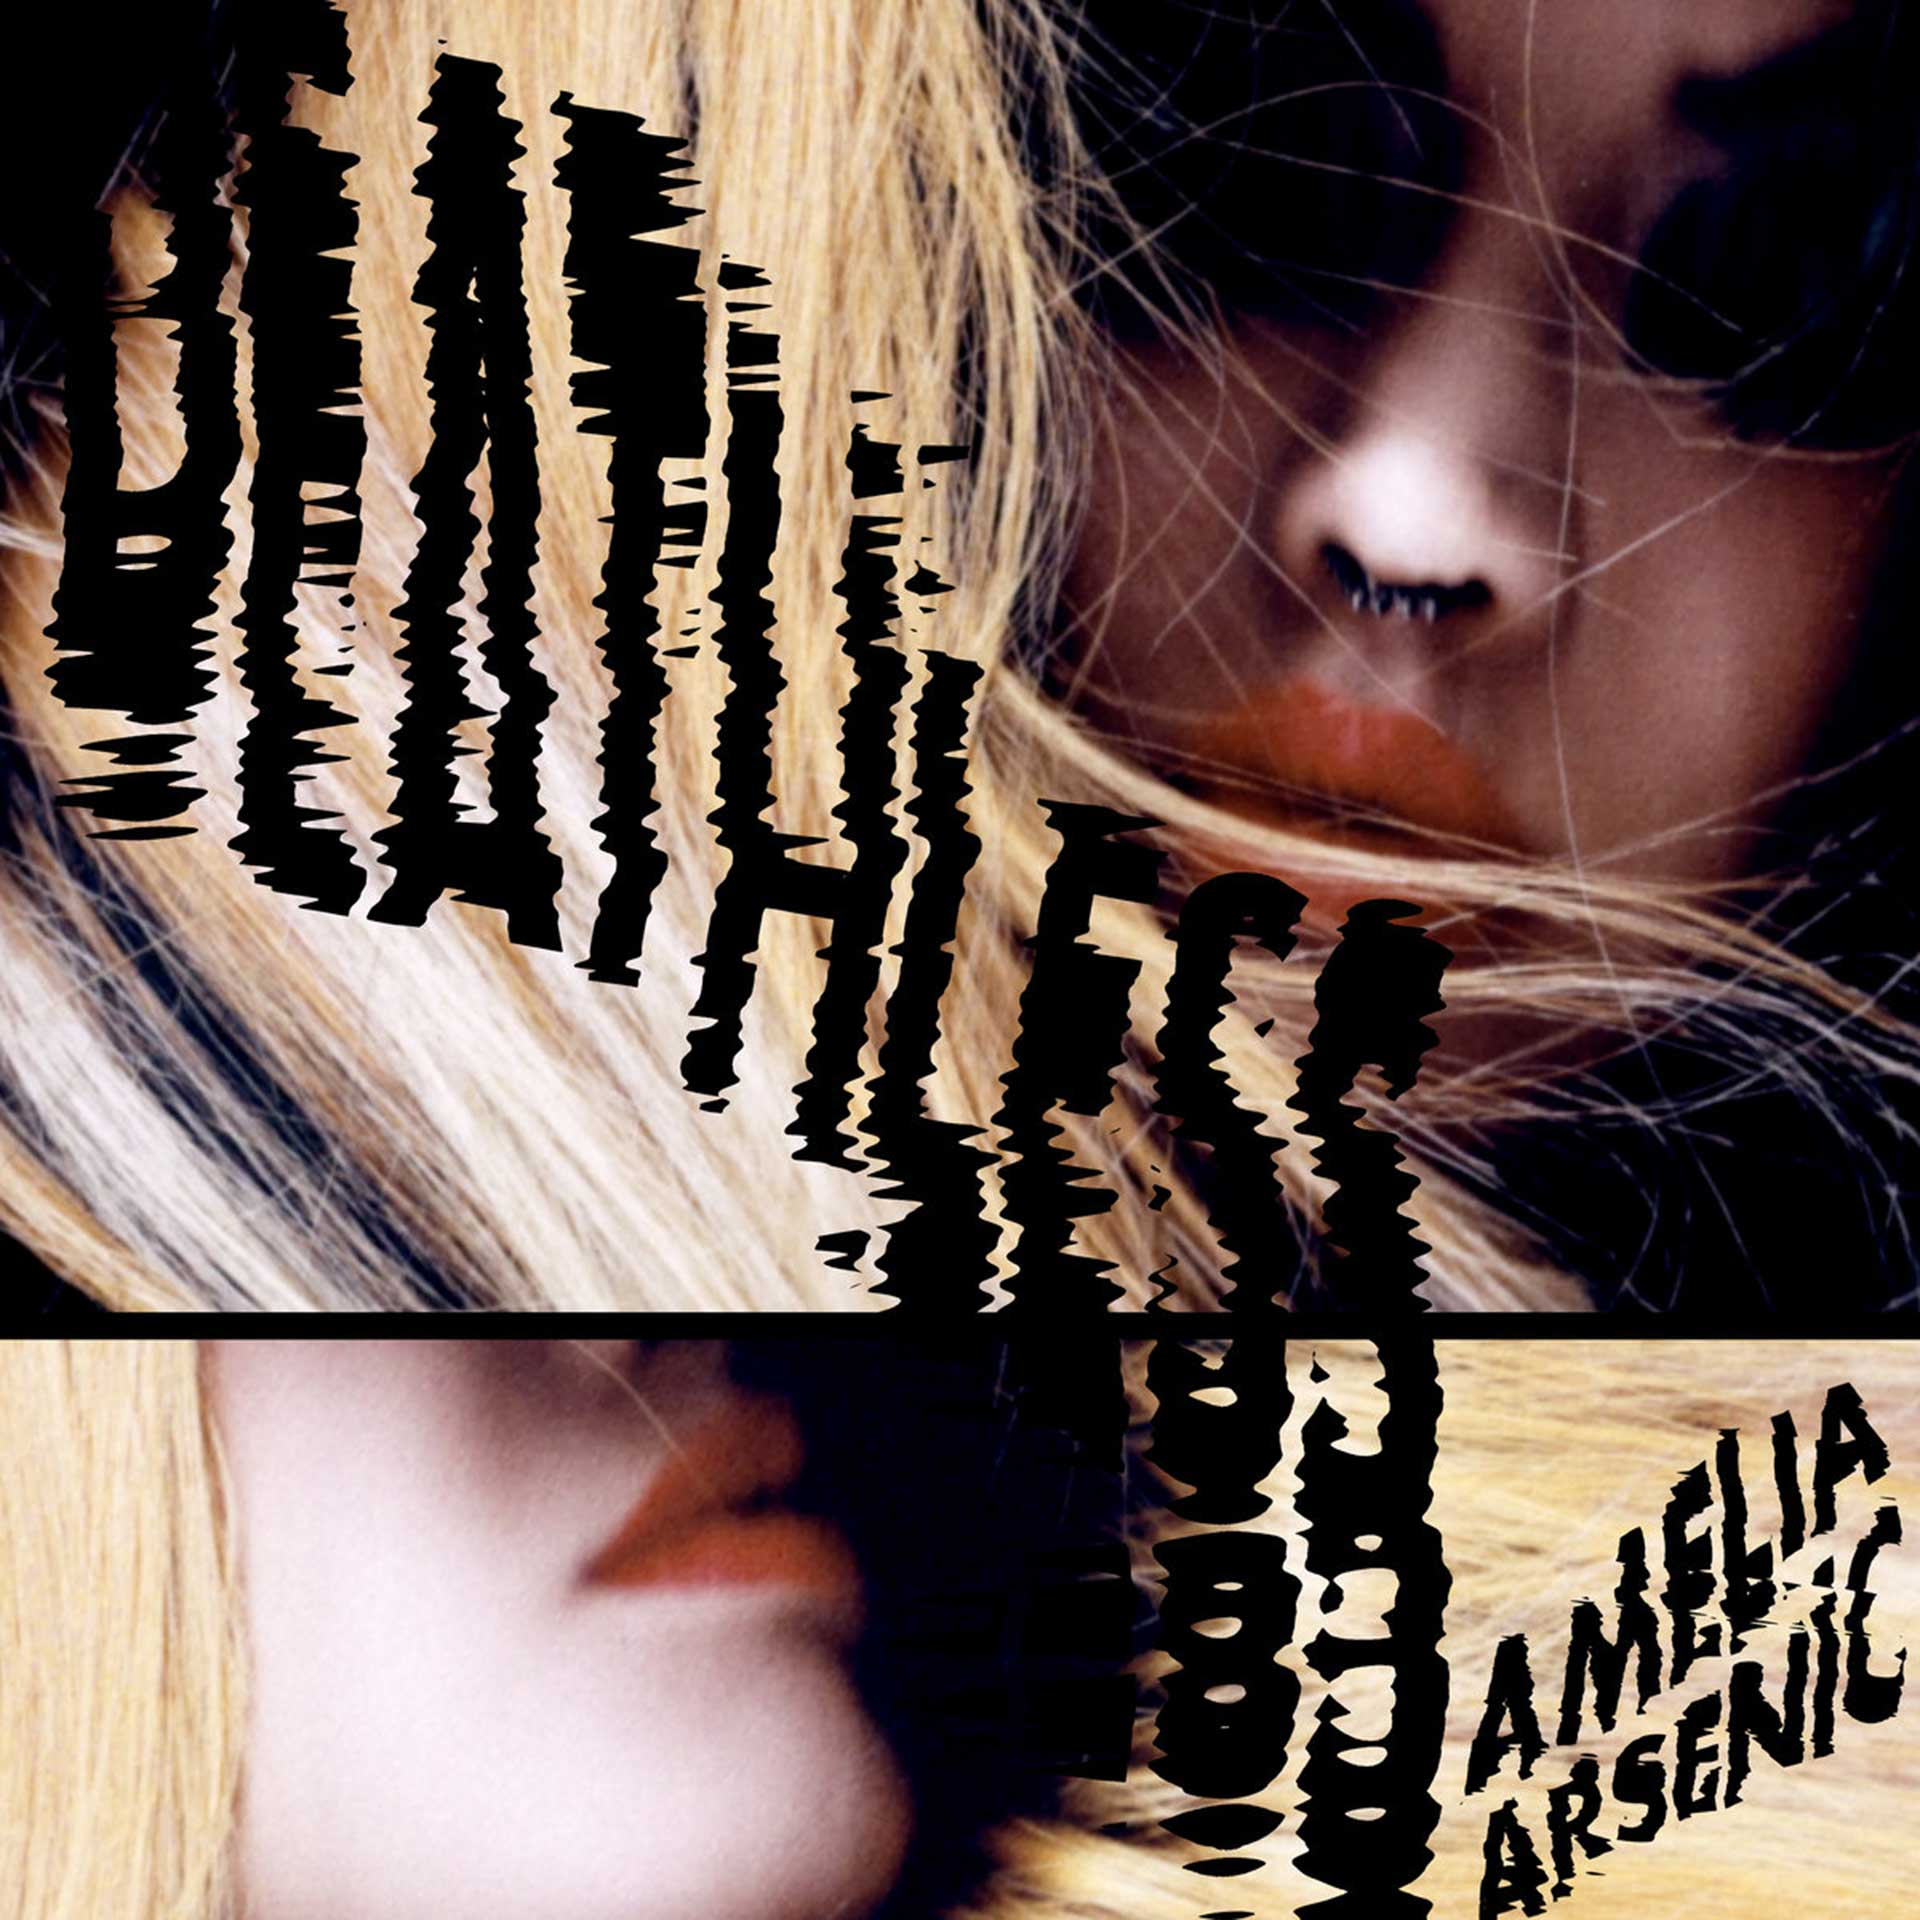 Amelia Arsenic - Deathless